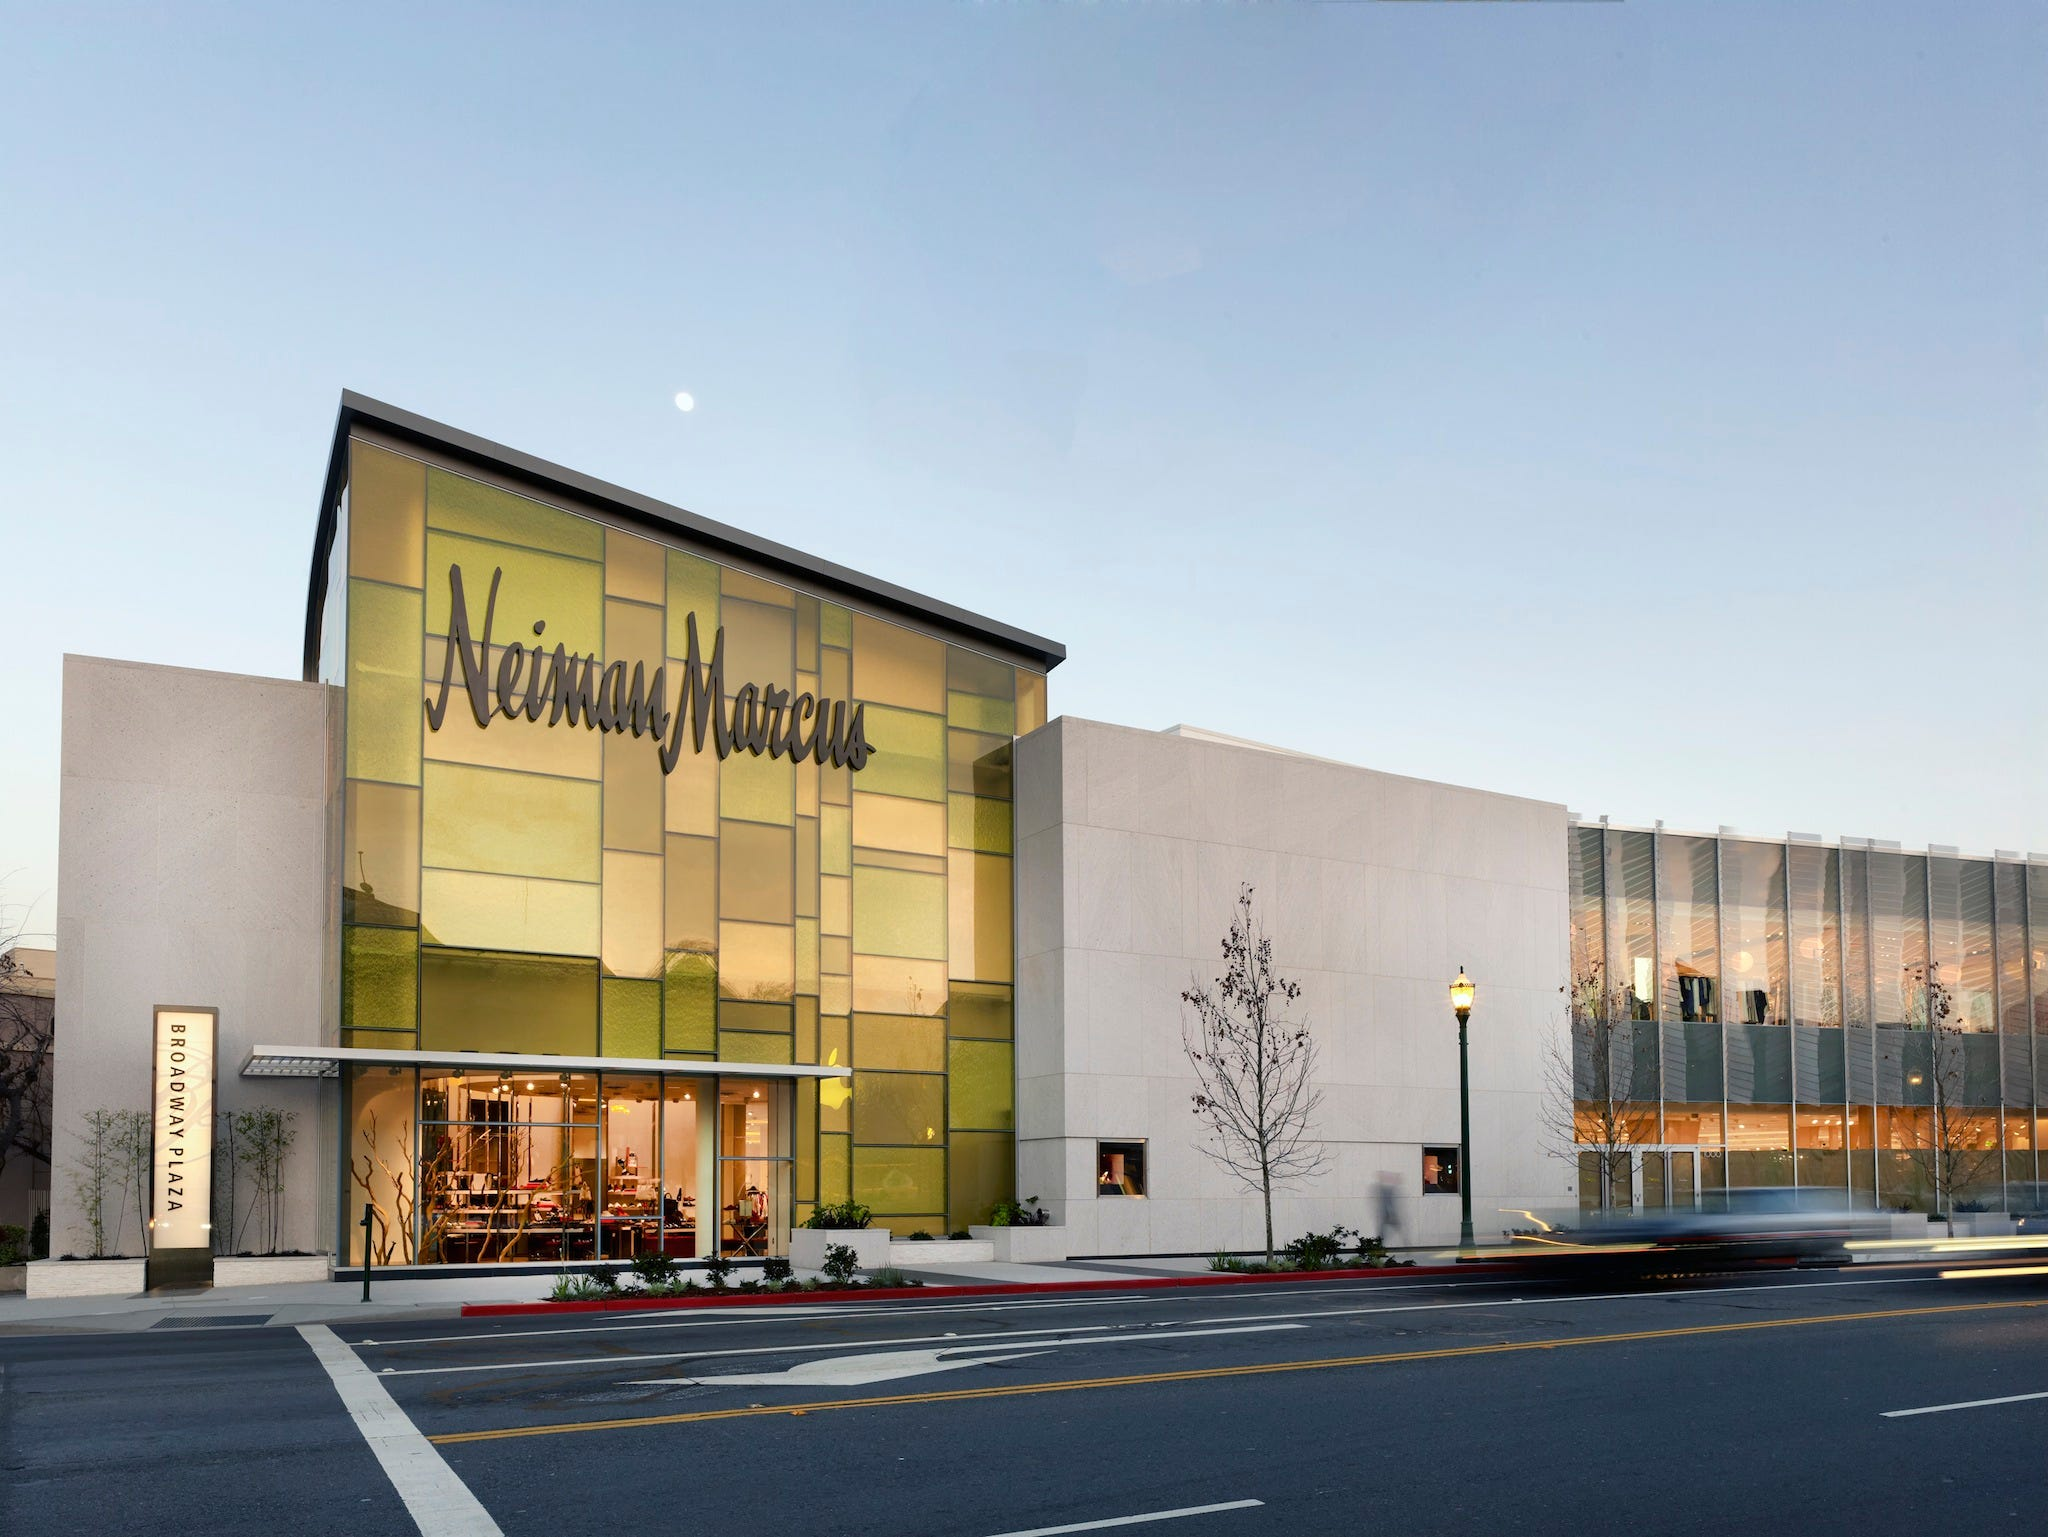 neiman marcus 1q revnues Neiman marcus announced its first quarterly comparable sales gain since 2015 thanks to a new 'digital first' strategy nevertheless, president, ceo and director karen katz said the firm's digital focus is powering neiman marcus in the right direction.